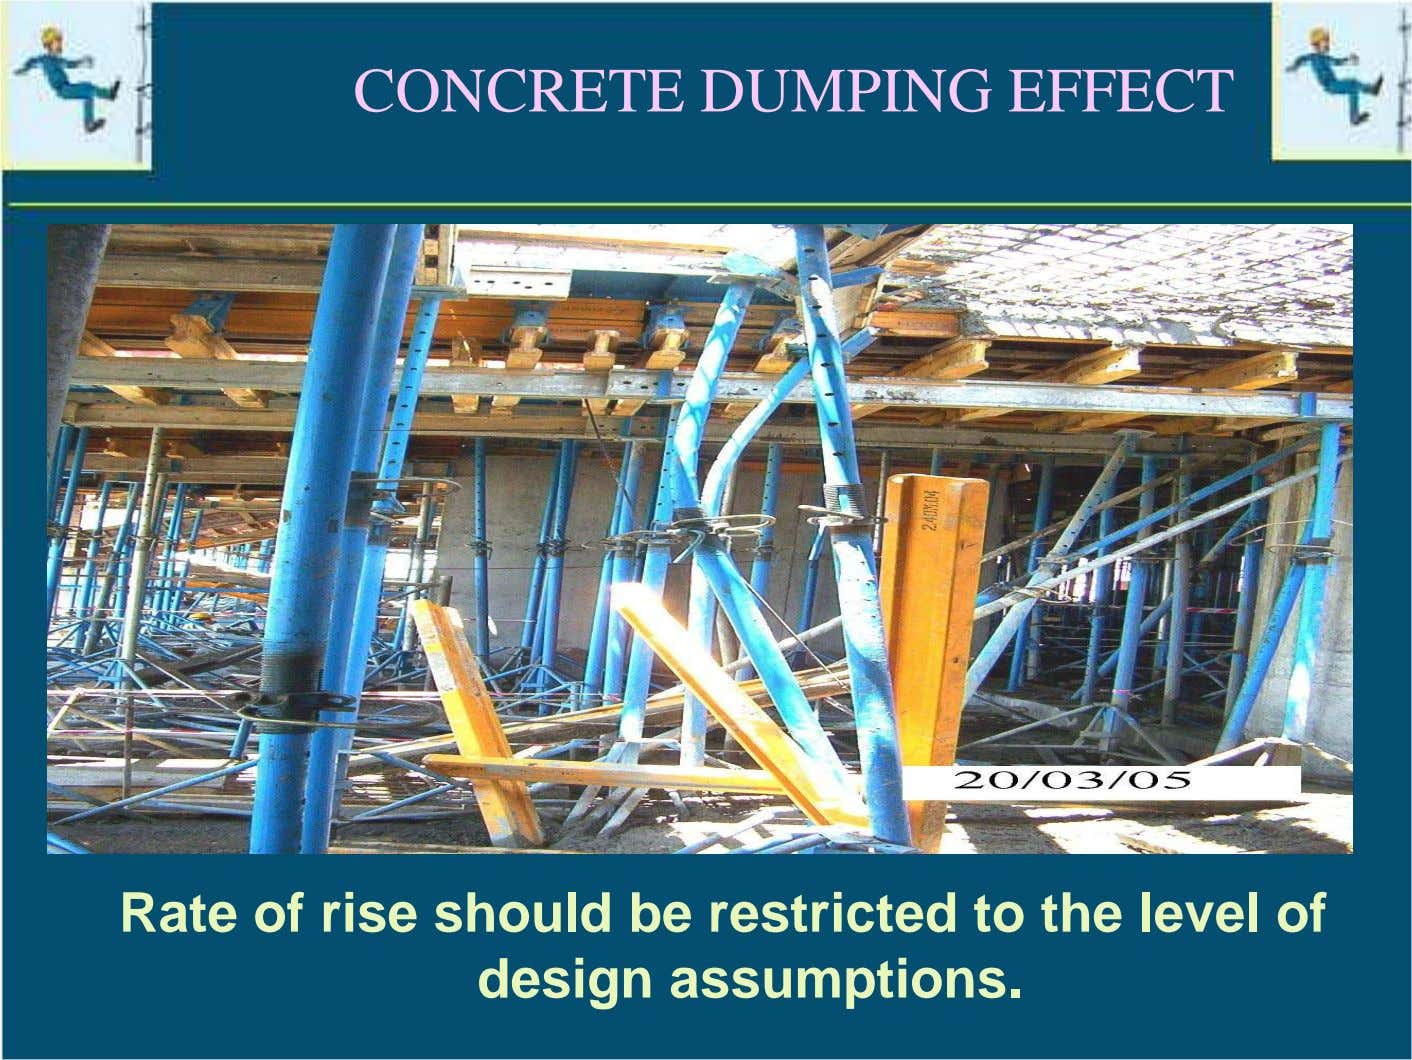 CONCRETE DUMPING EFFECT Rate of rise should be restricted to the level of design assumptions.